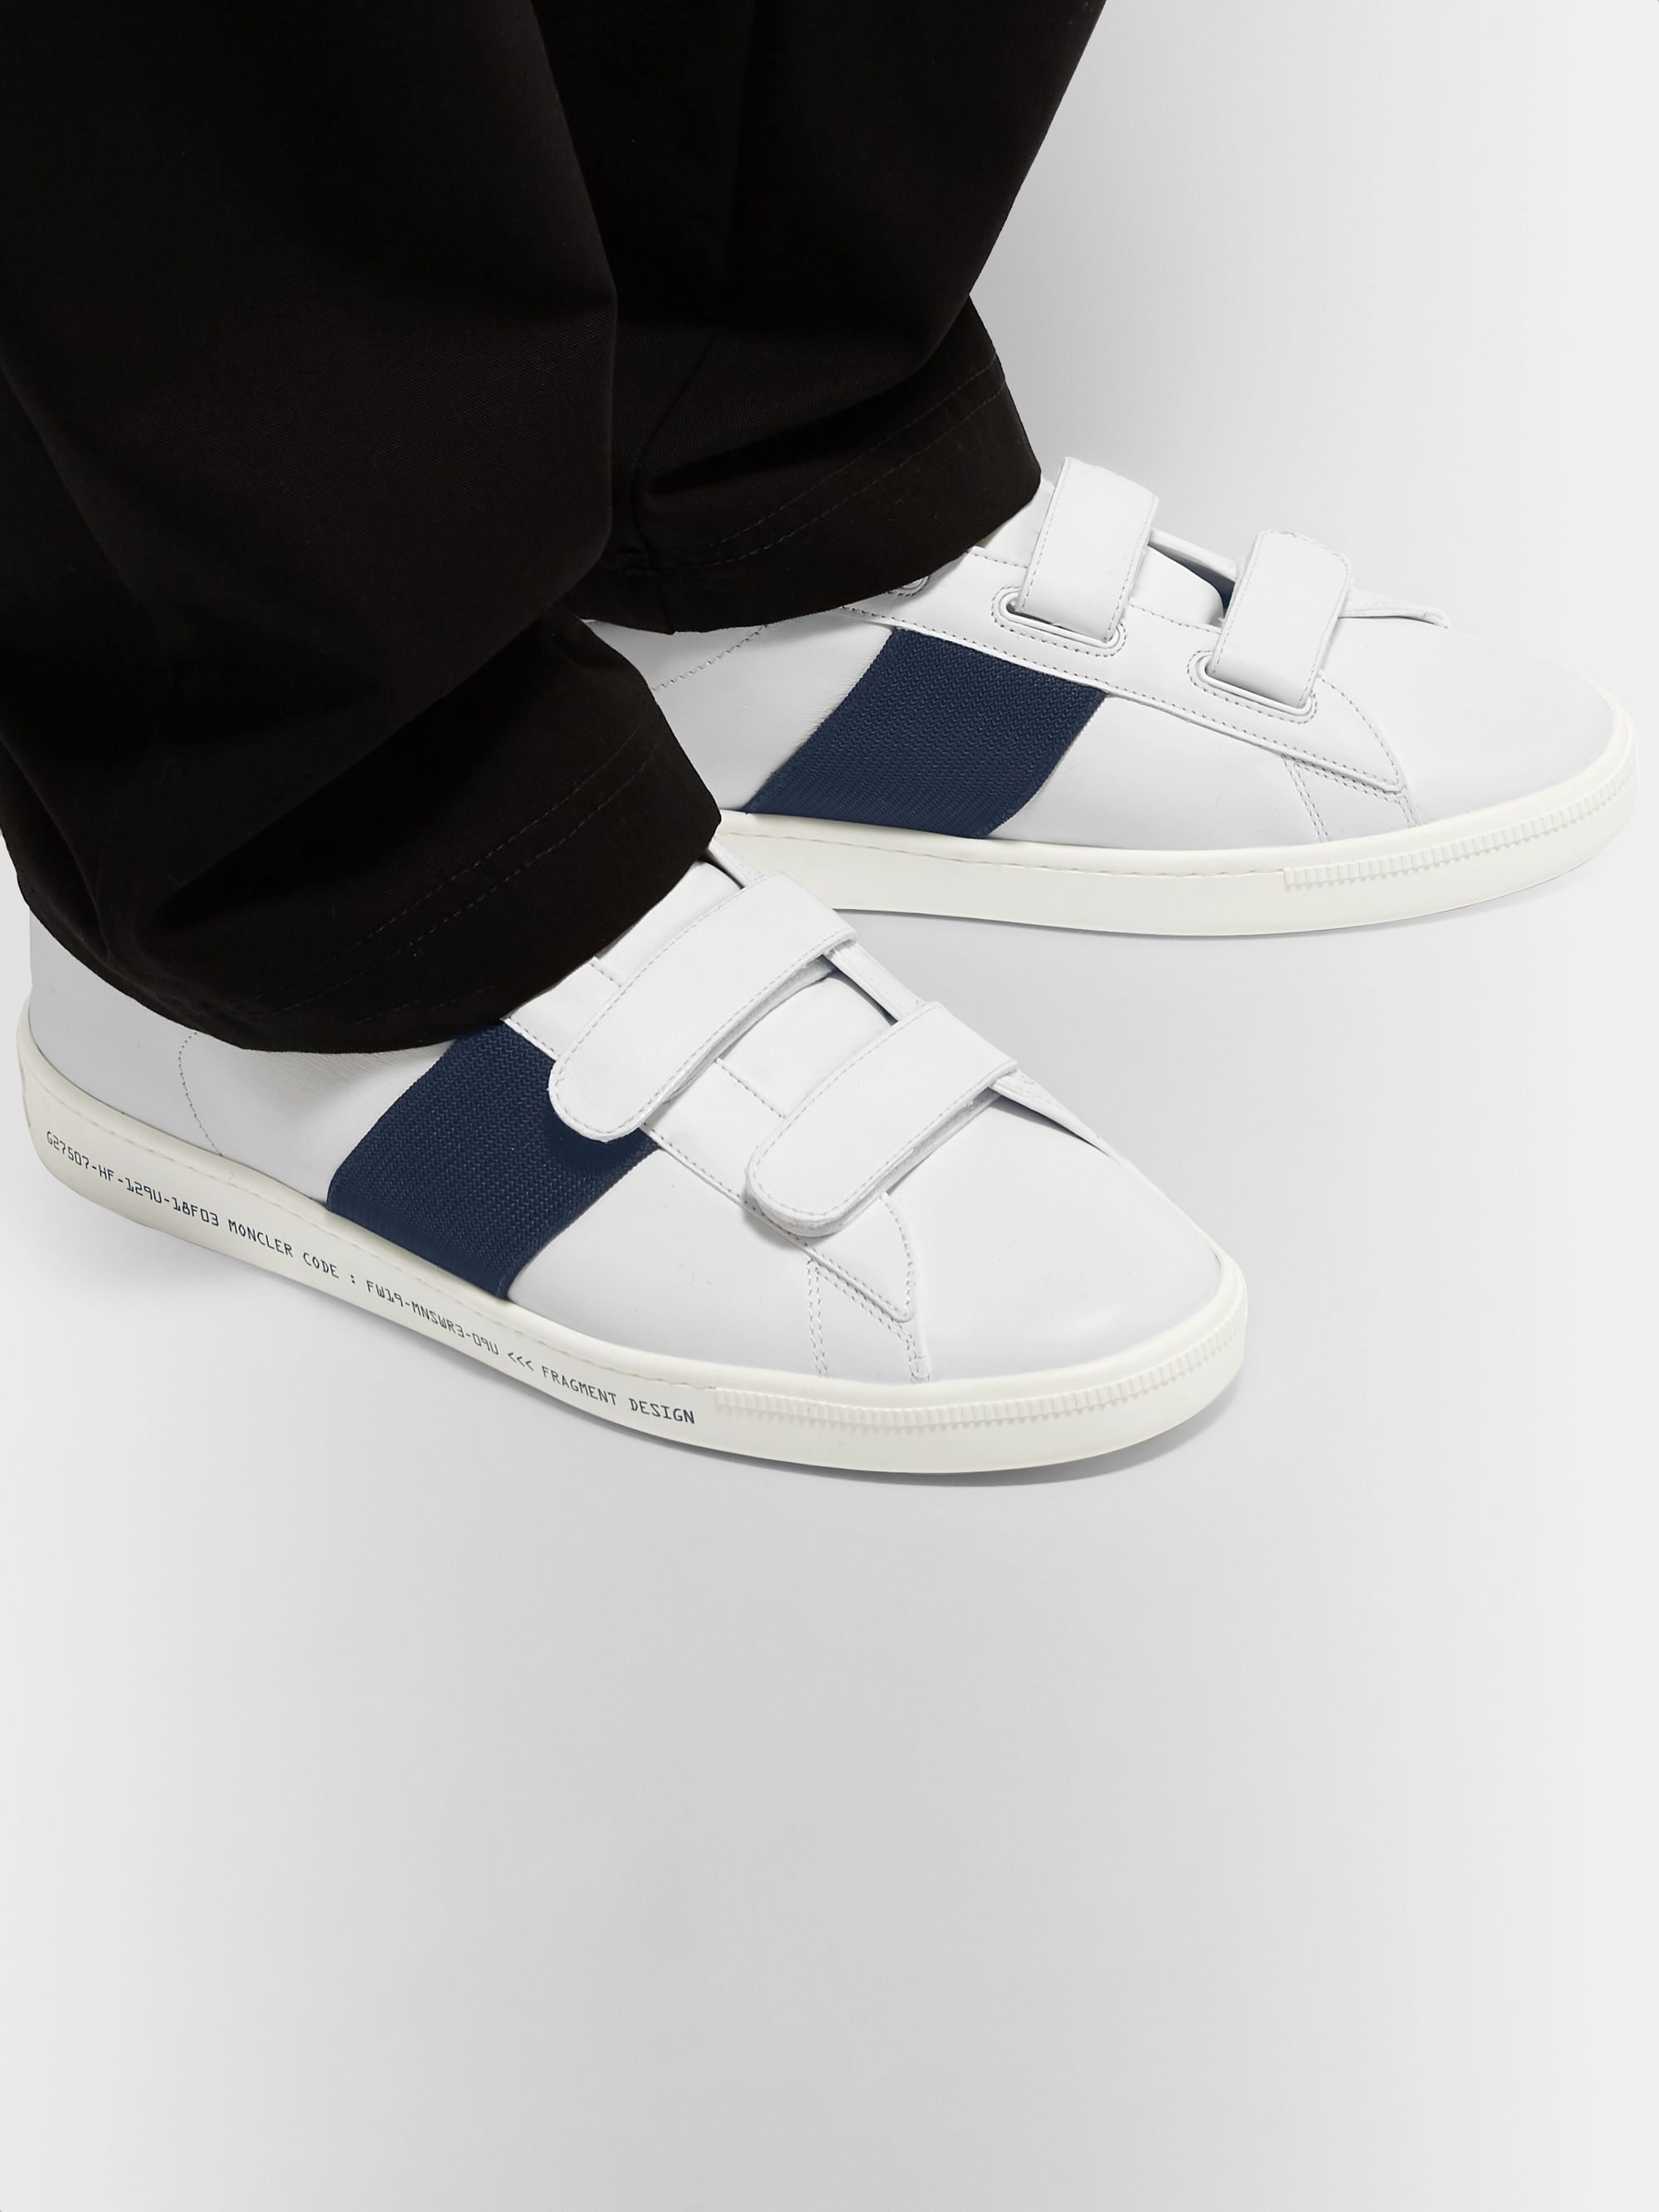 Moncler Genius 7 Moncler Fragment Webbing-Trimmed Leather Sneakers